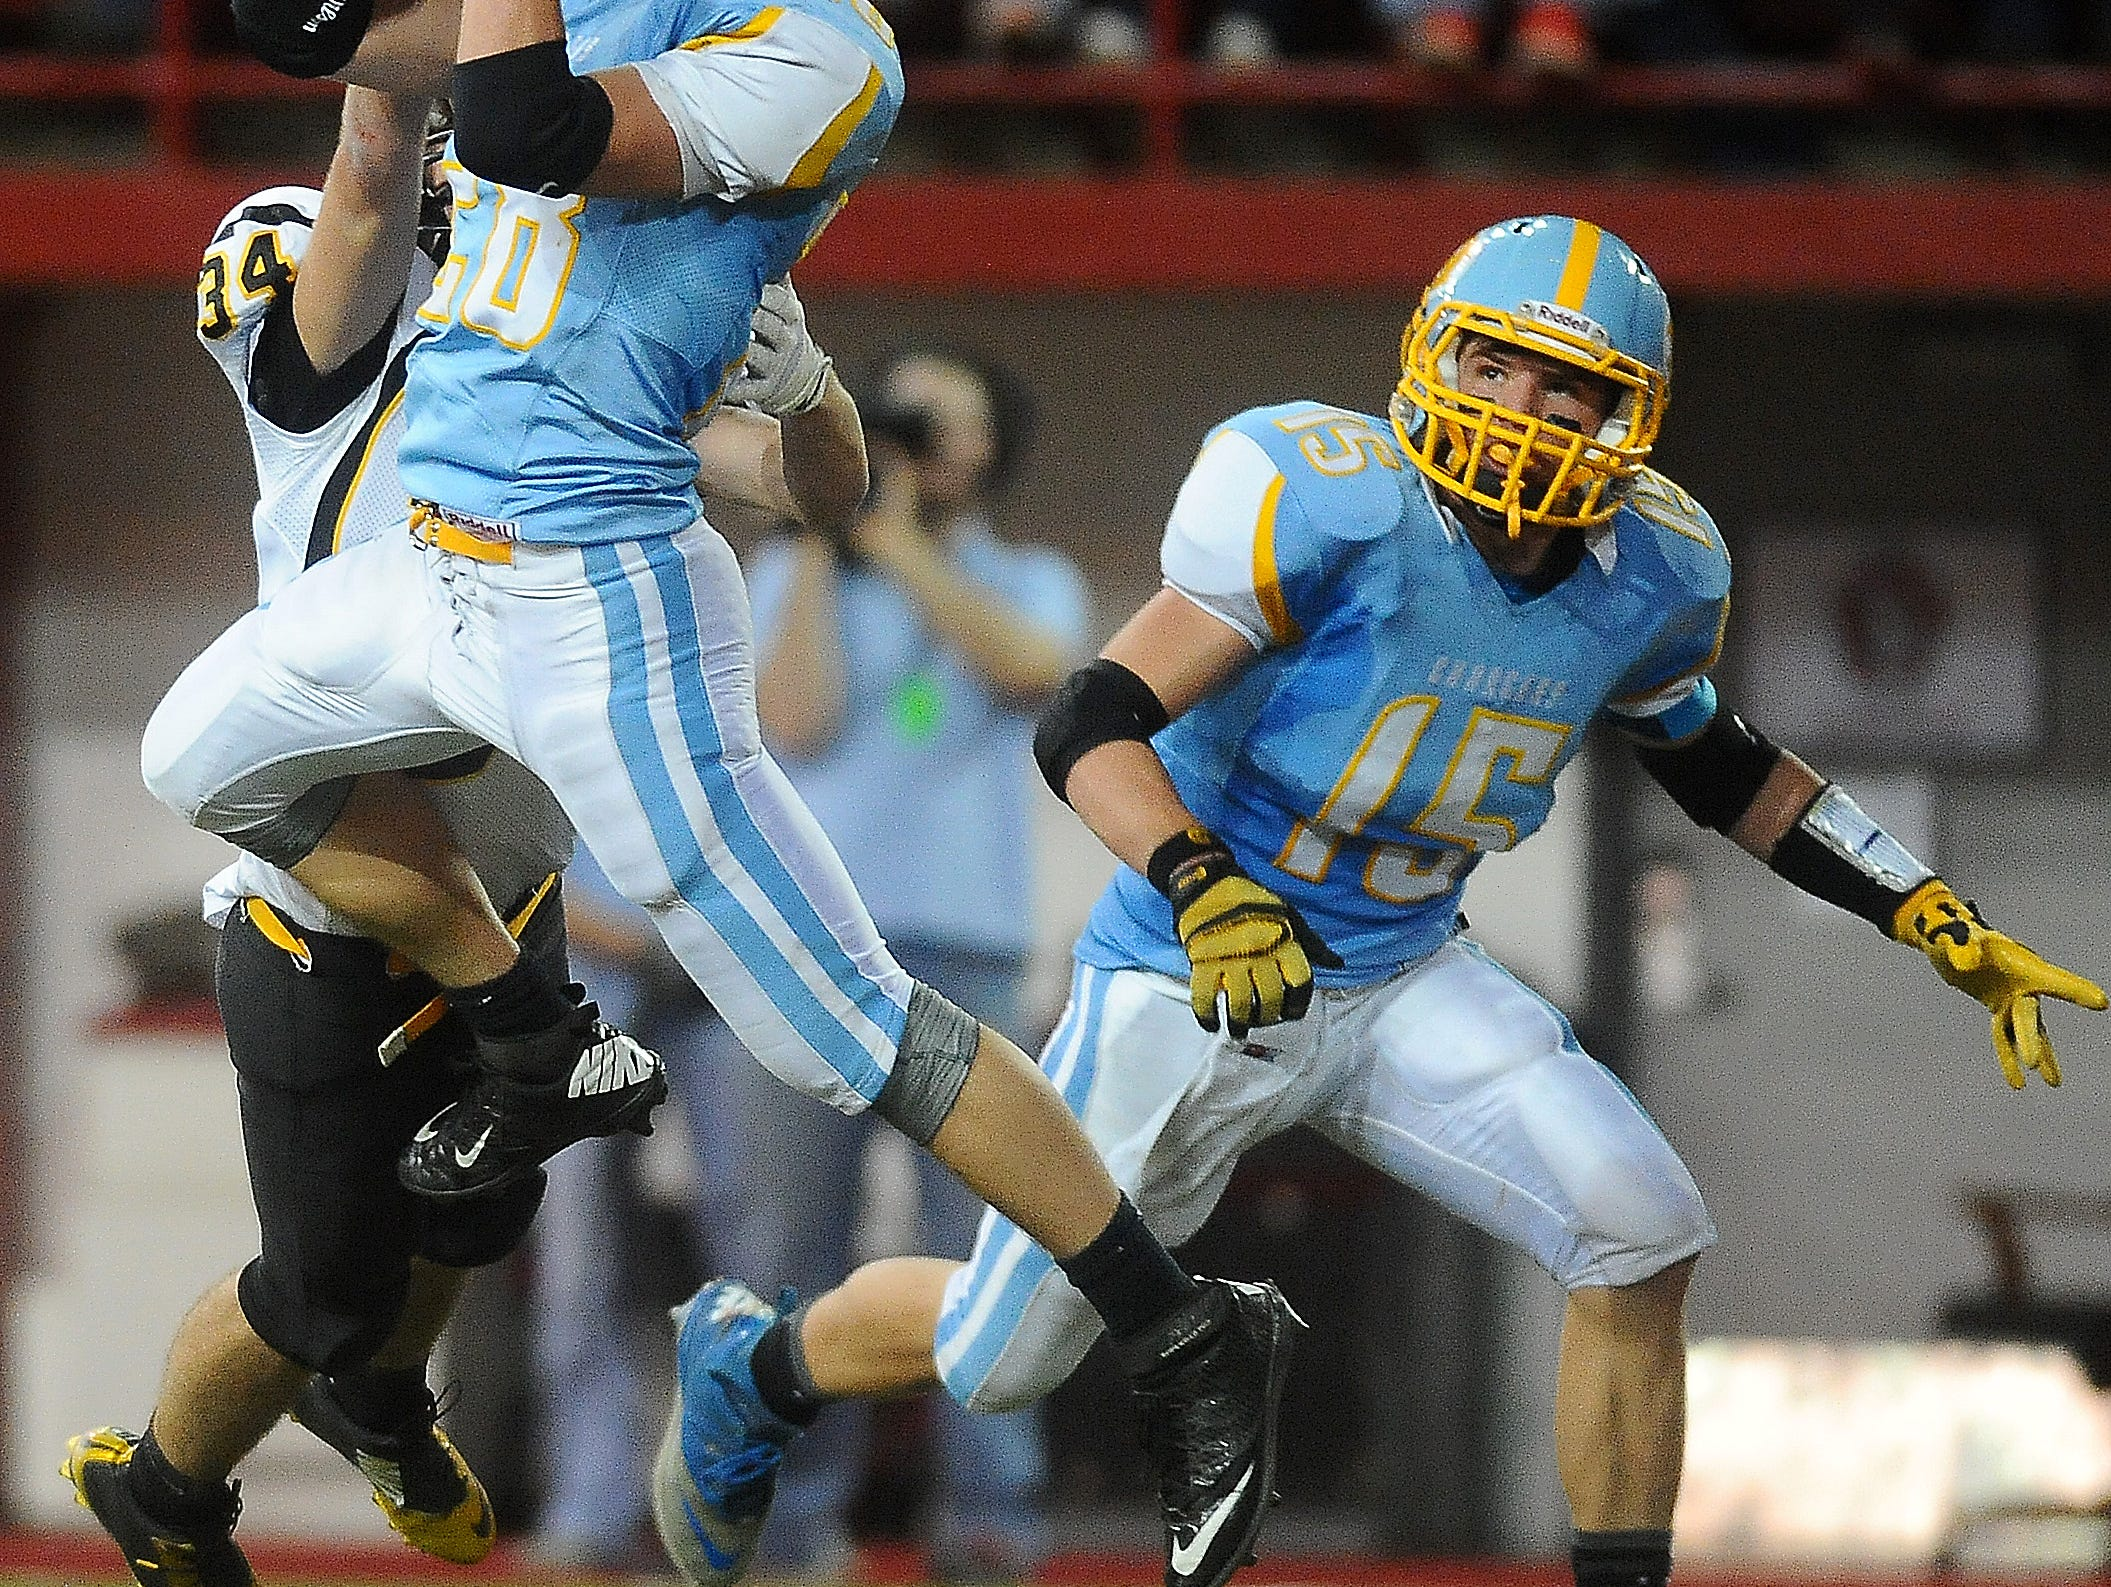 Hamlin's Ryder Grantham catches a pass in the state championship game in 2014. Hamlin won the state title last season.